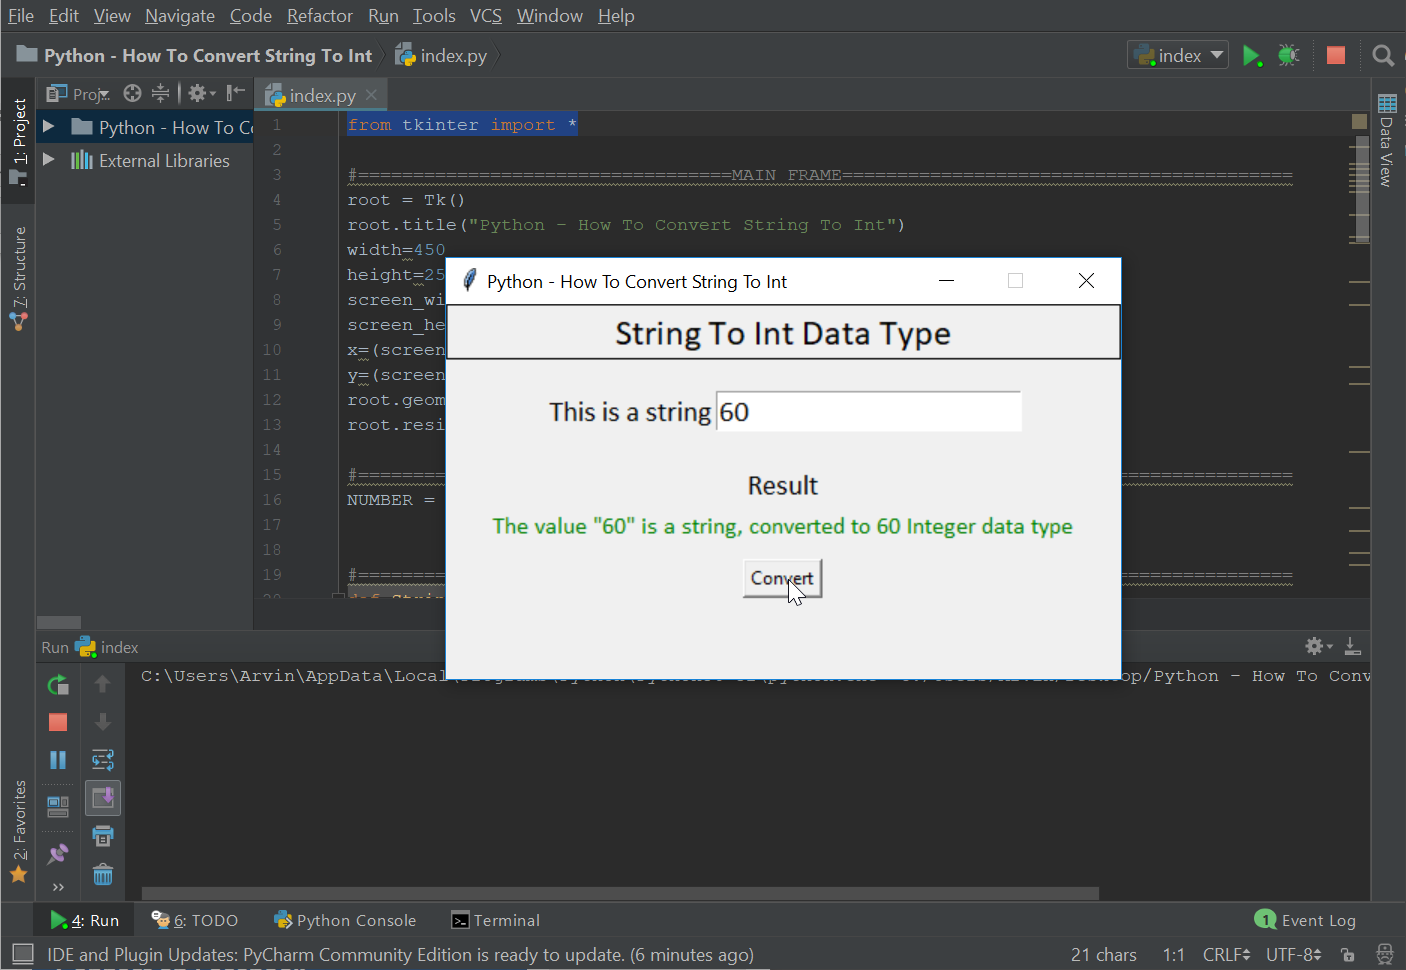 Python - How To Convert String To Int | Free Source Code & Tutorials